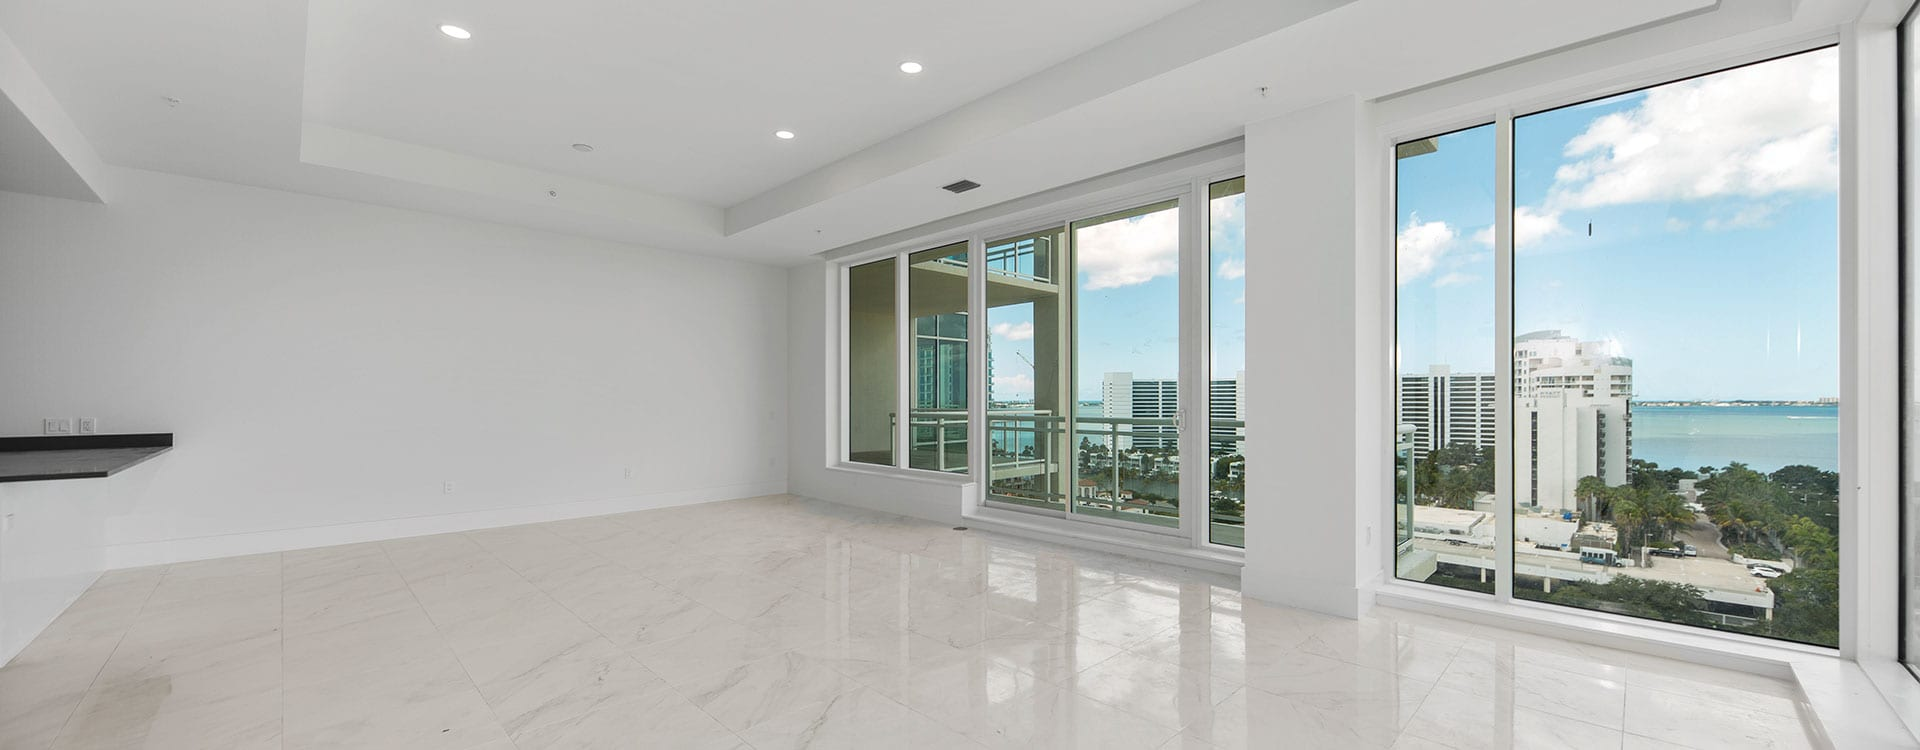 BLVD Sarasota Residence 1102 Great Room with a view of thew sarasota bayfront